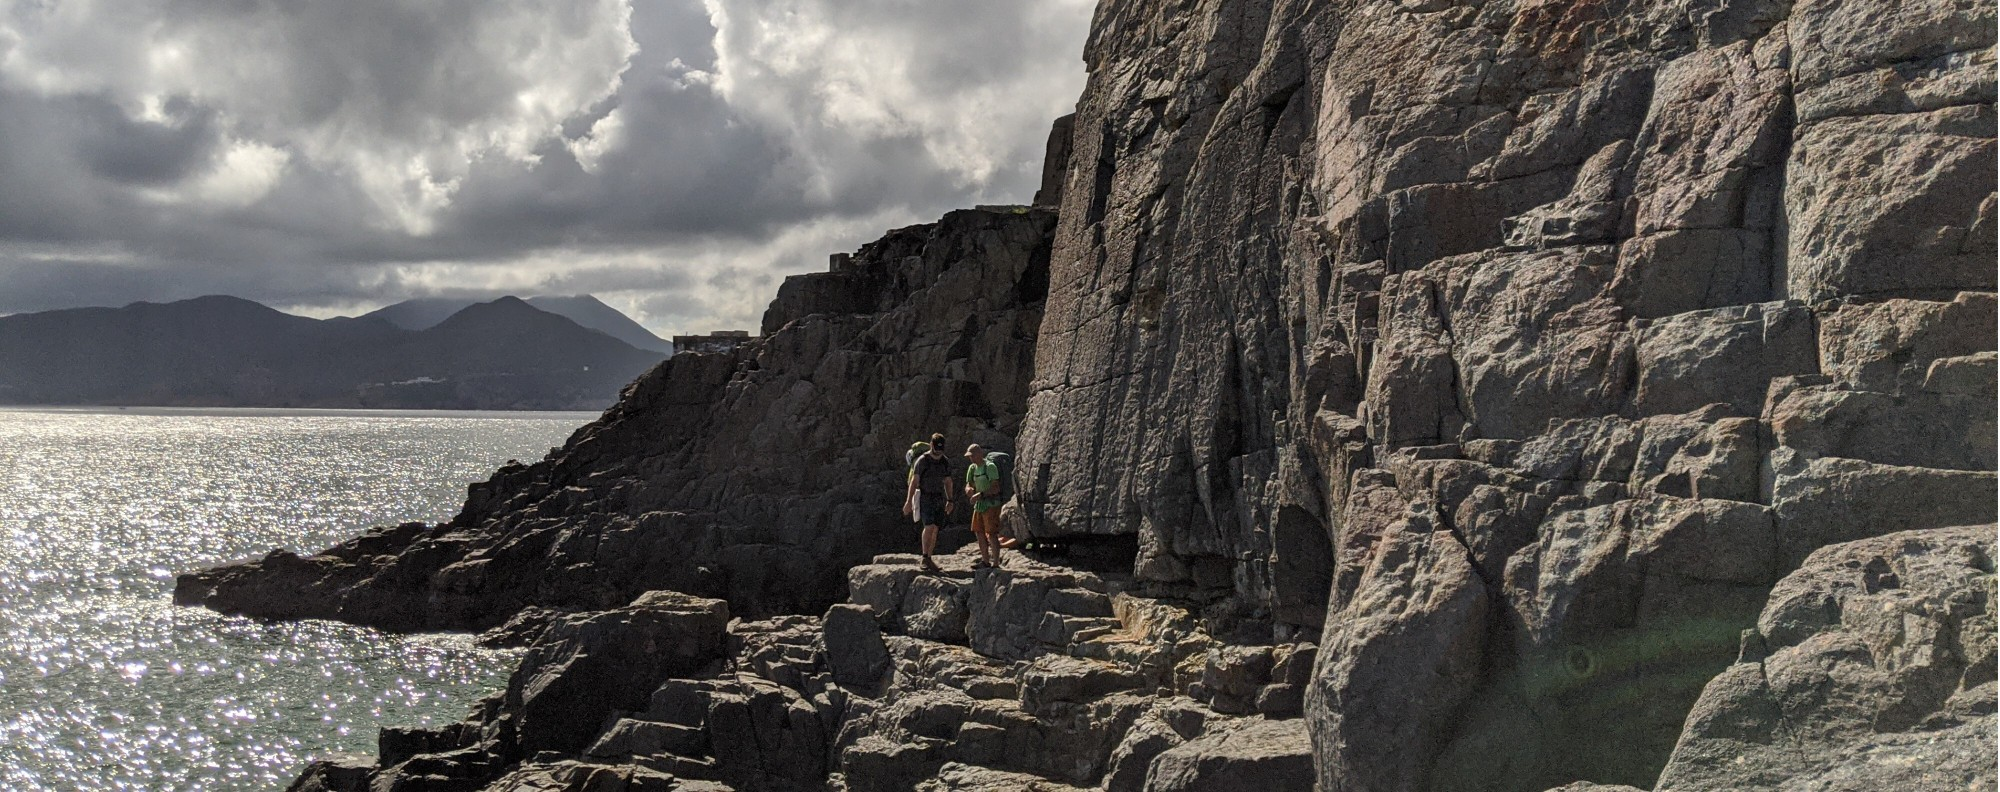 Climbers have developed six new crags on the south side of Tung Lung Island.